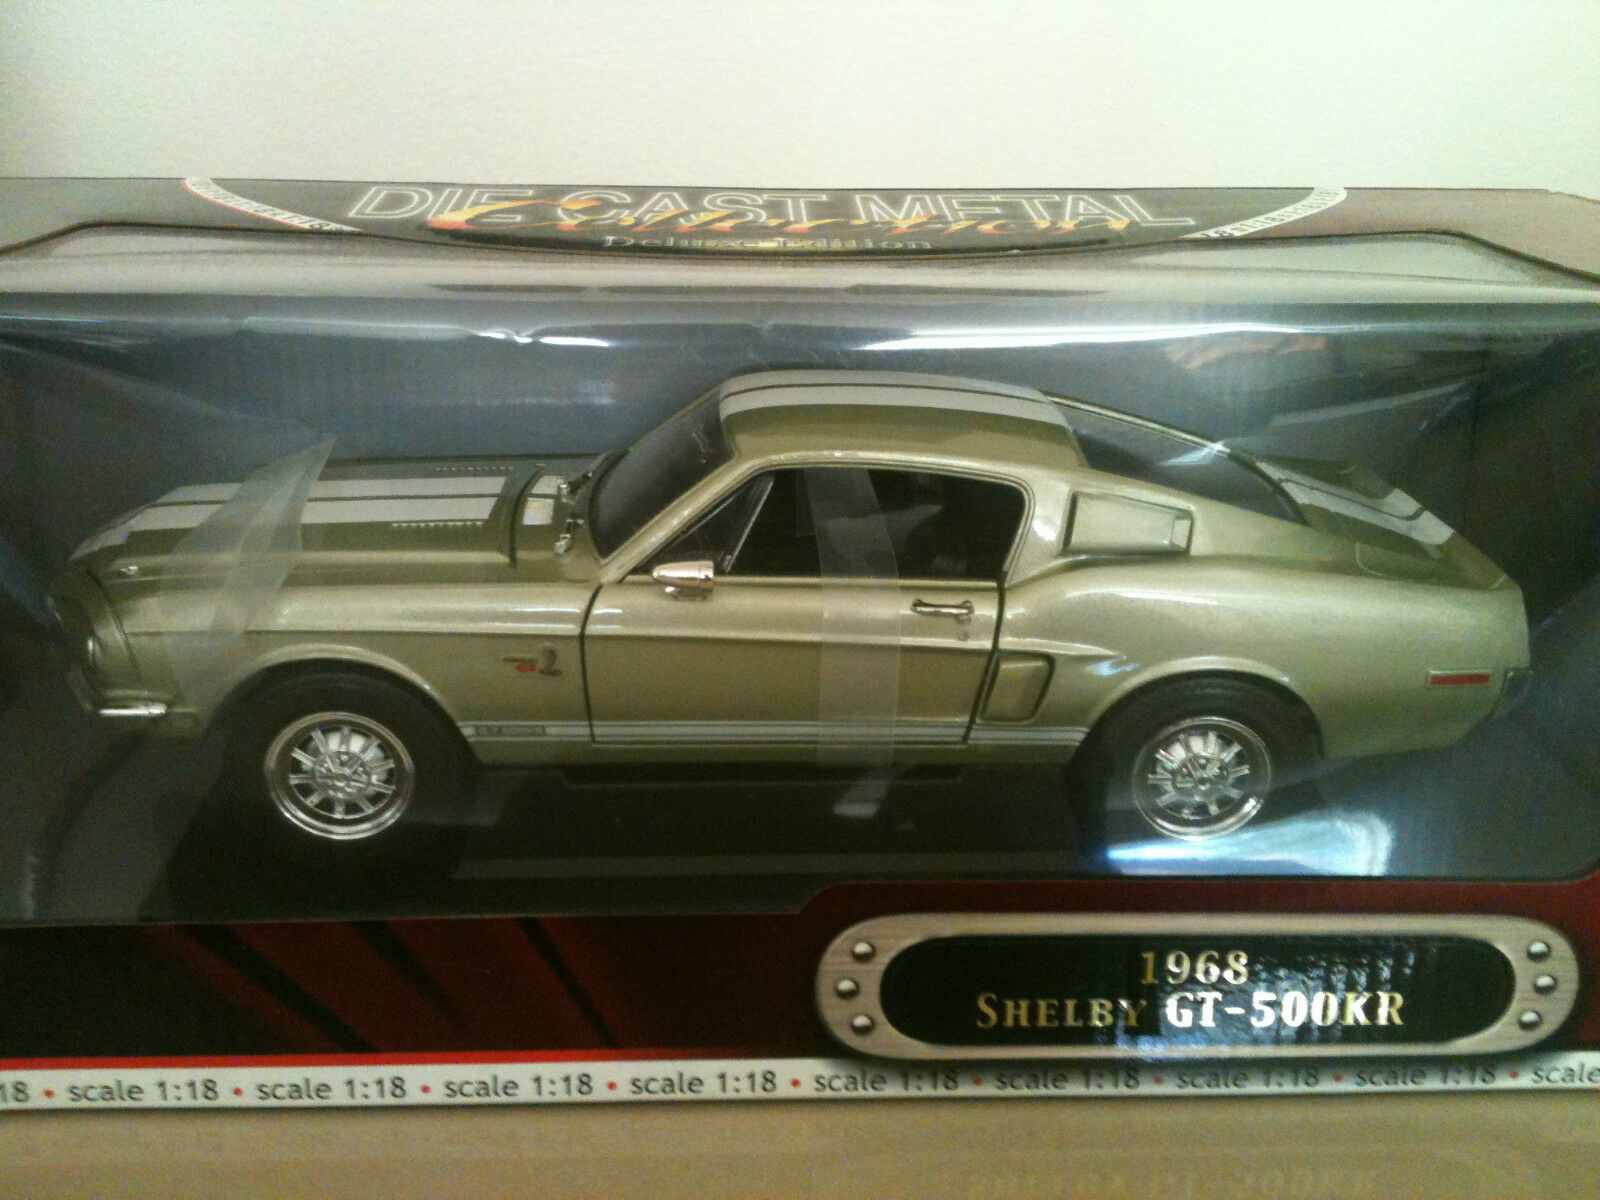 YAT MING 1968 SHELBY GT-500 KR DELUXE EDITION DIE CAST 1 18 HAND MADE